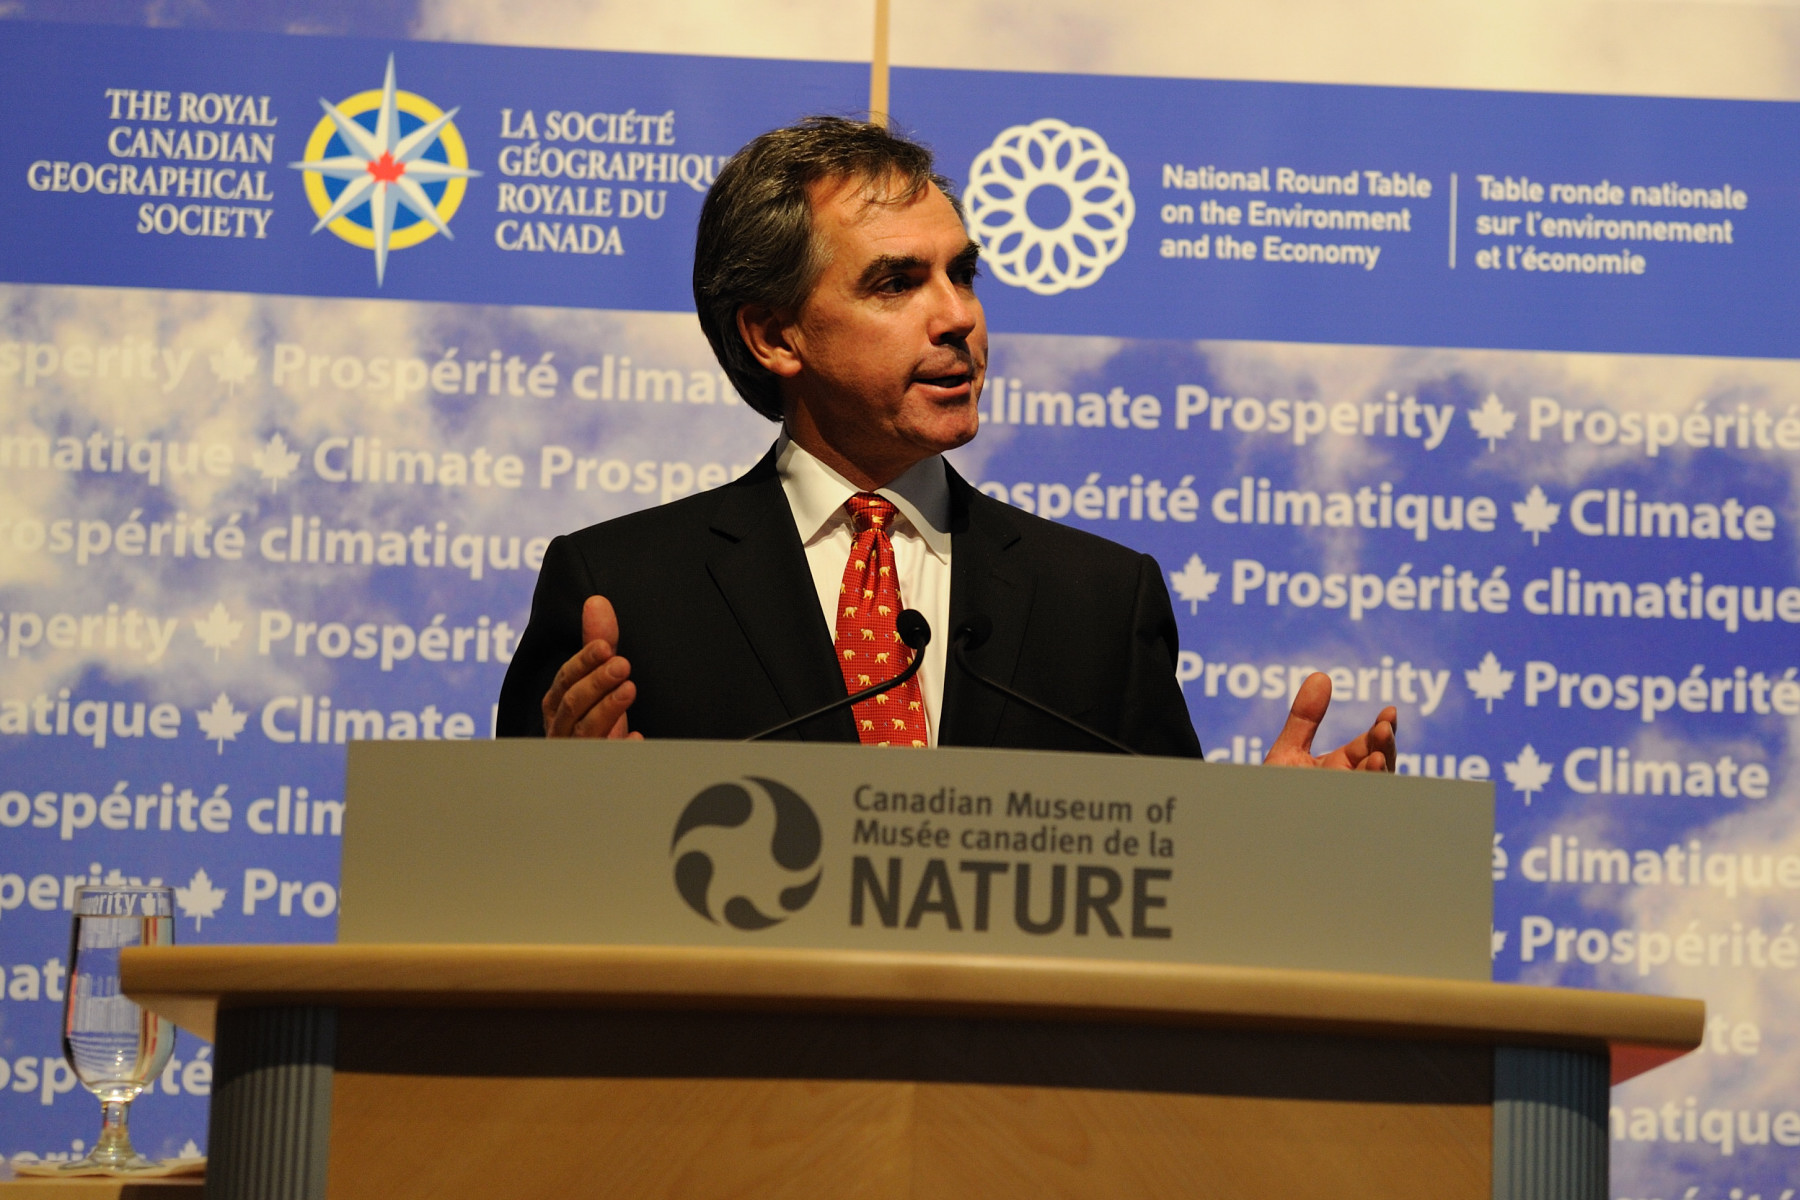 The Honourable Jim Prentice, Minister of Environment, also delivered a speech during which he congratulated both partners.